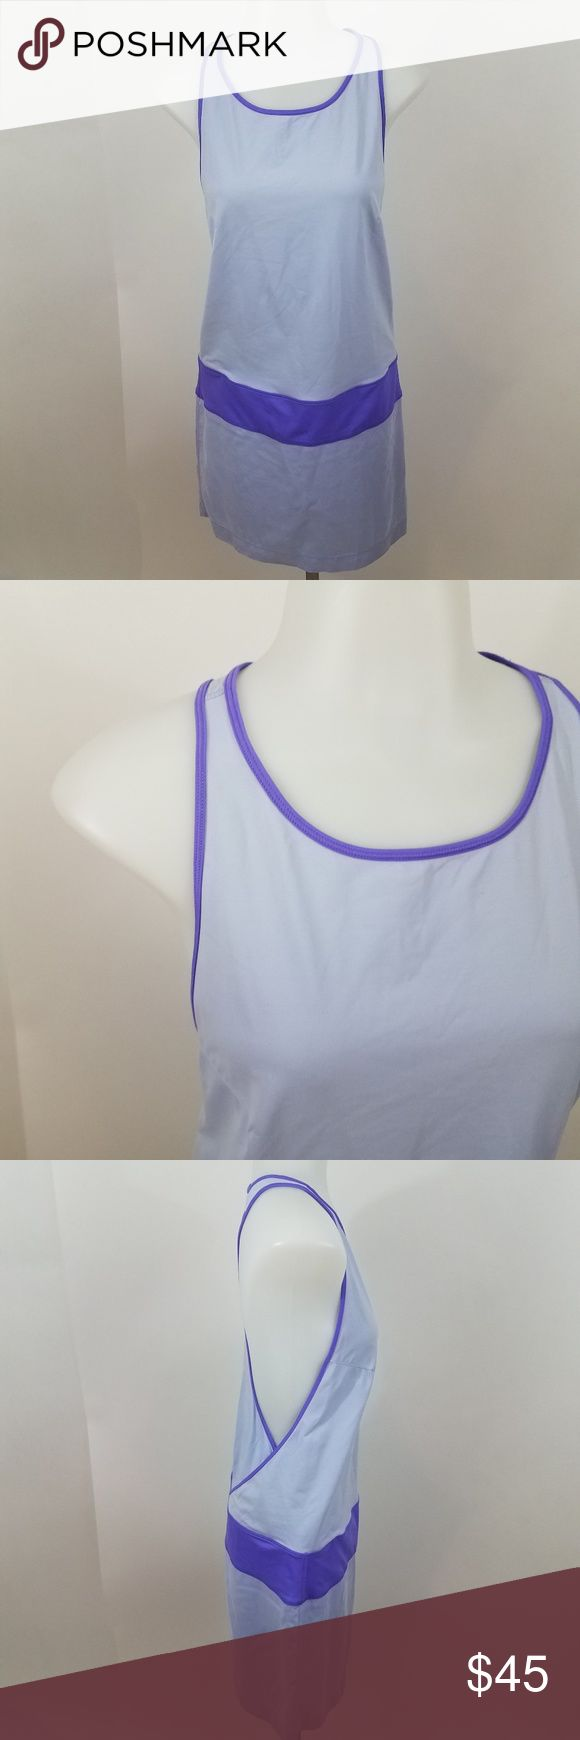 Lululemon blissed out dress racerback yoga Lululemon Dress blissed out purple tank shift cover up workout 6 yoga racerback Size 6, see measurements below. Used. Hole, stain. See photos.  Measurements are taken while item is lying flat.  Length: 34.5 Inches  Armpit to Armpit: 14.5 Inches  Inv AV. lululemon athletica Dresses